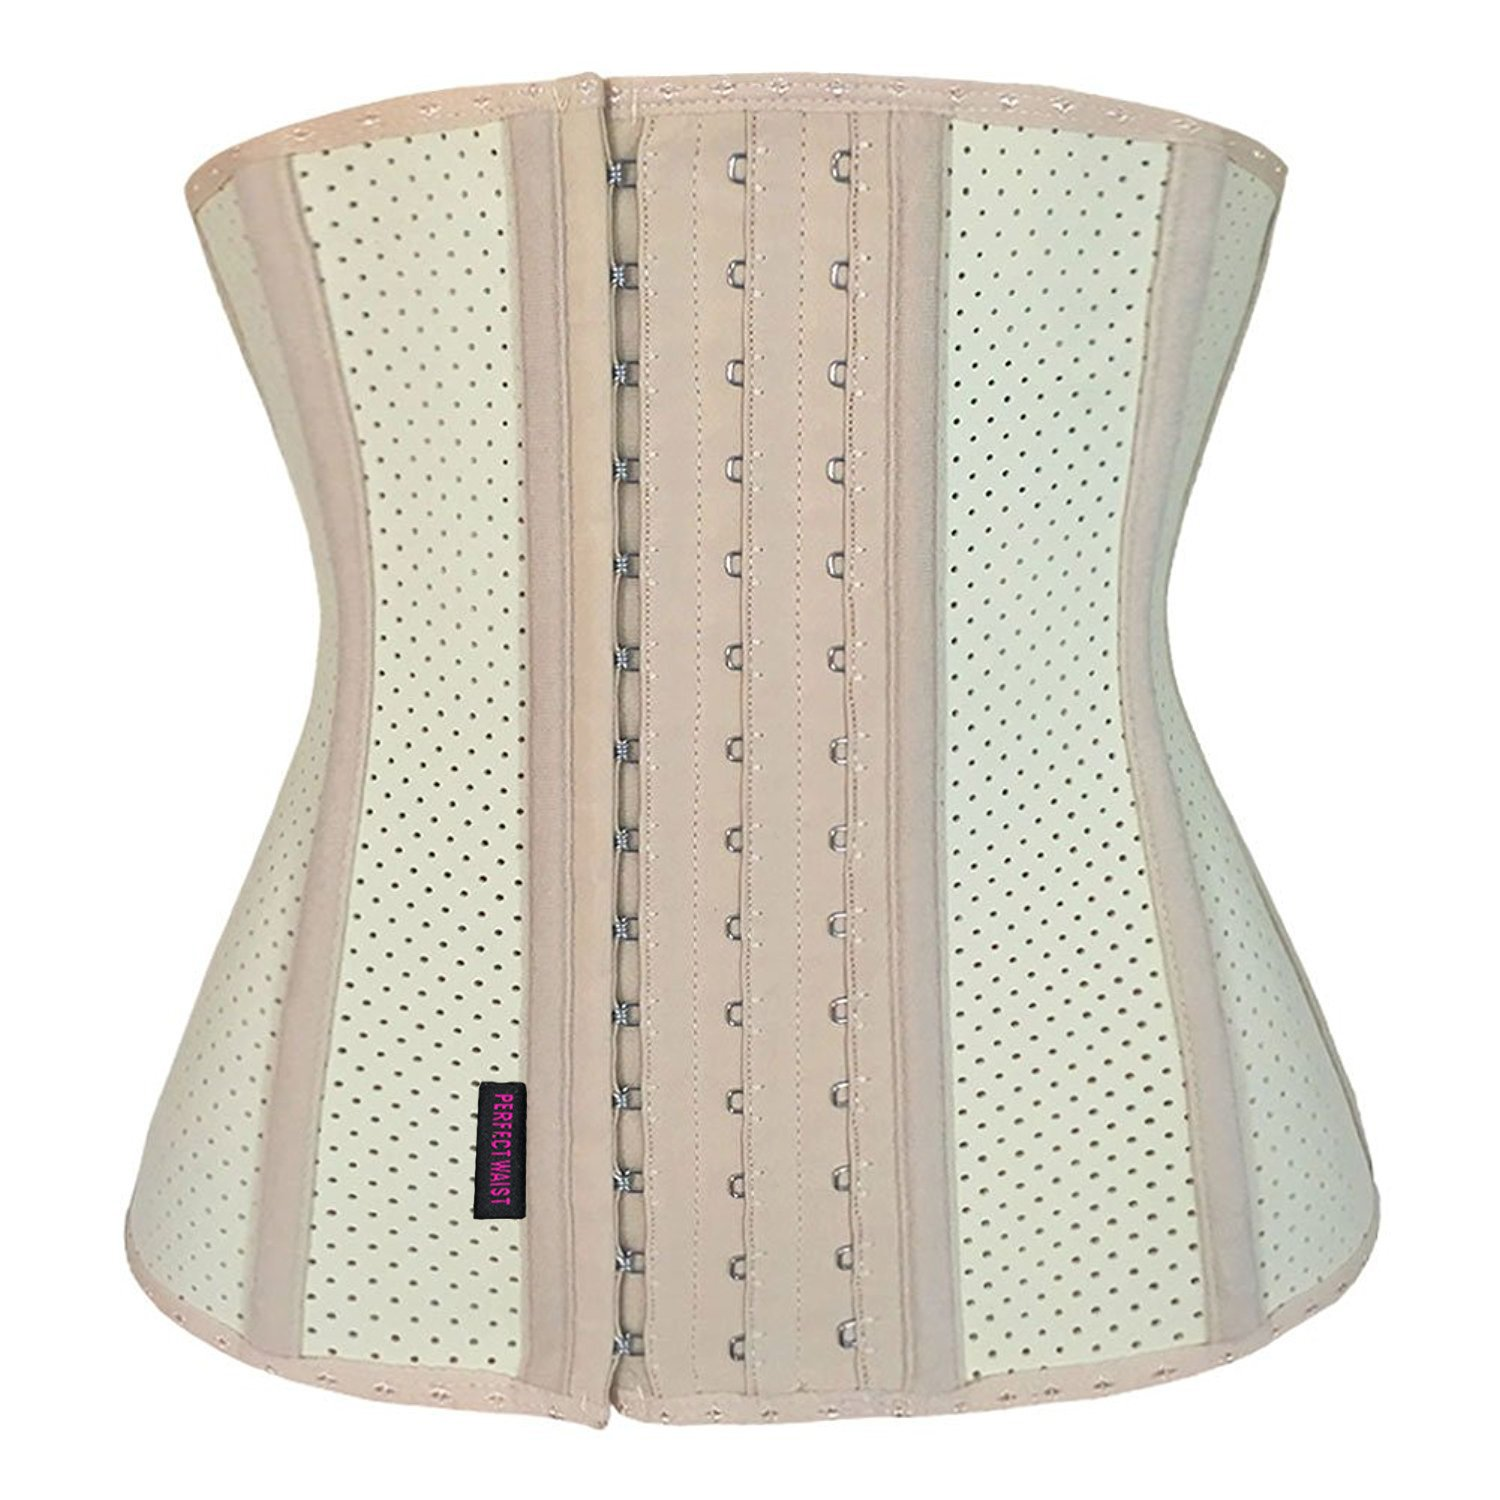 36f9fa2ec22 Galleon - FIRM ABS Women s Mesh Waist Trainer Workout Breathable Waist  Corset With 9 Steel Boned Shapewear